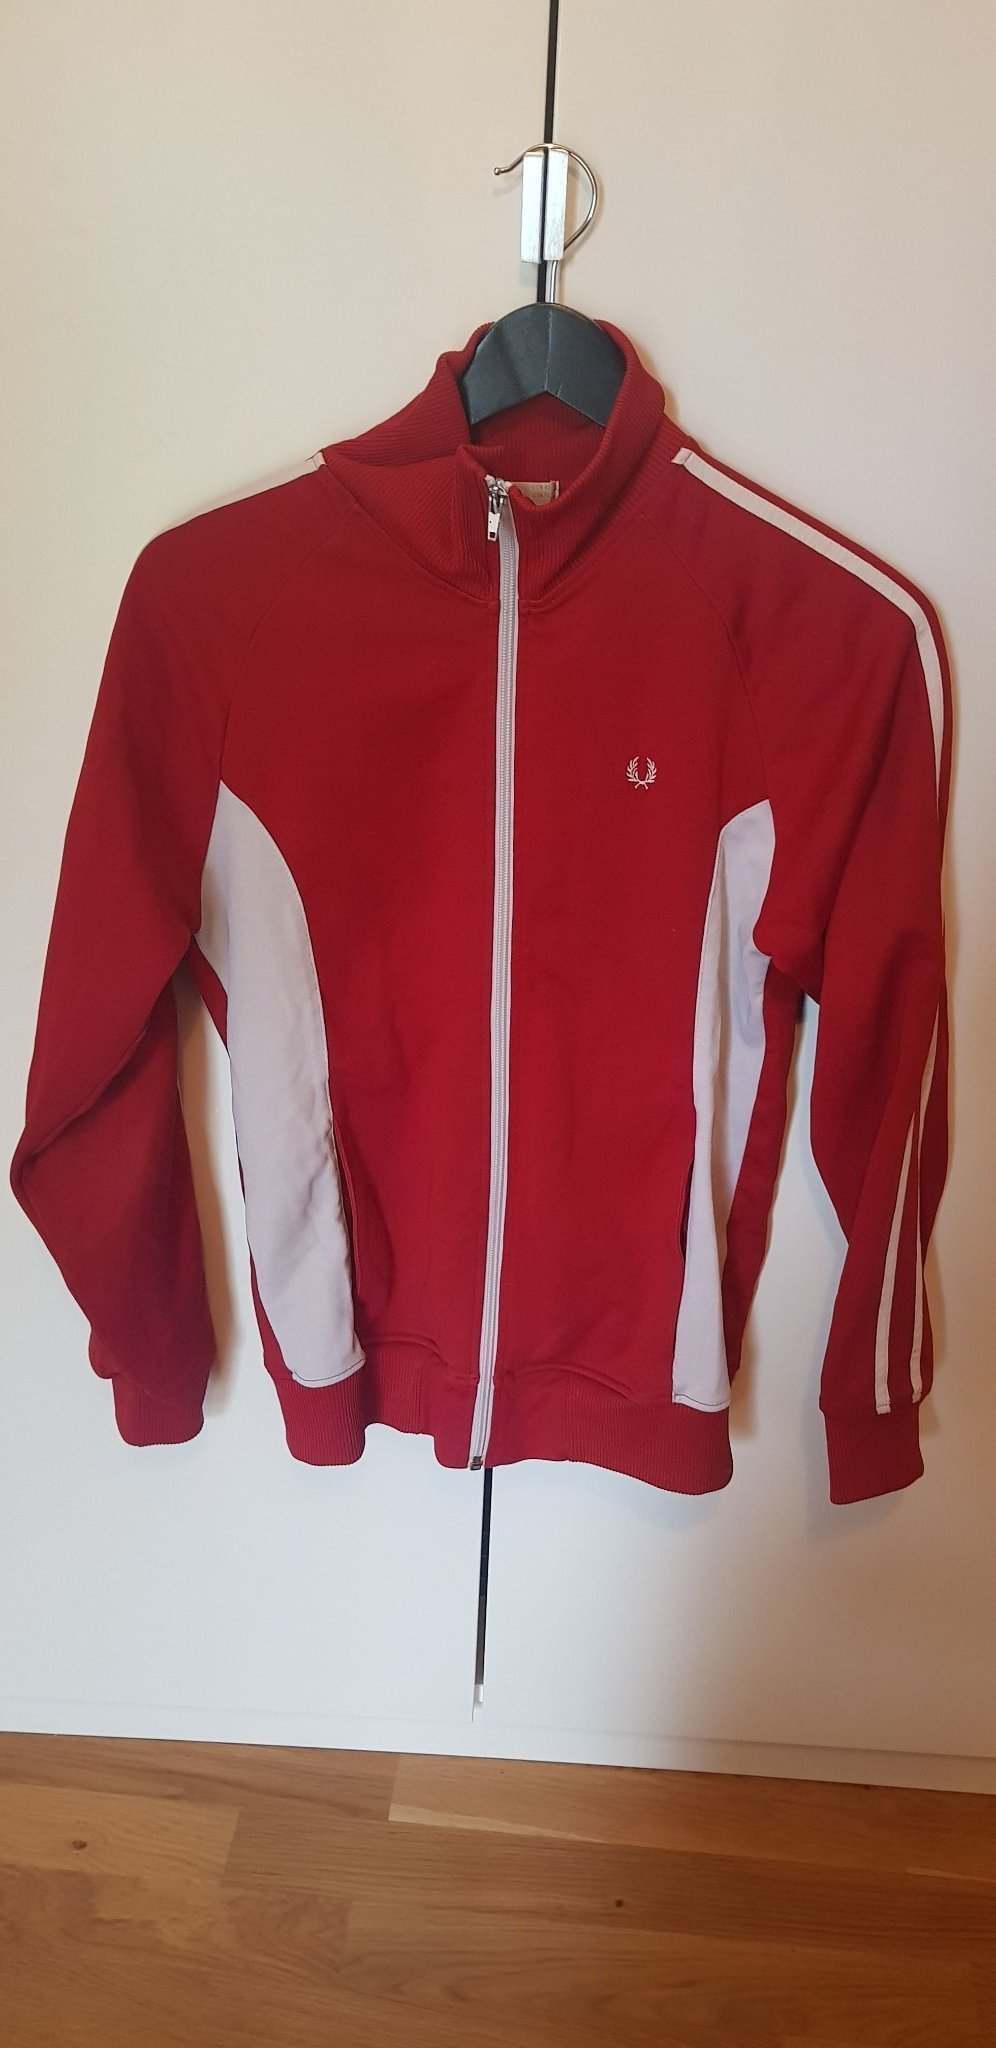 Fred perry jacka